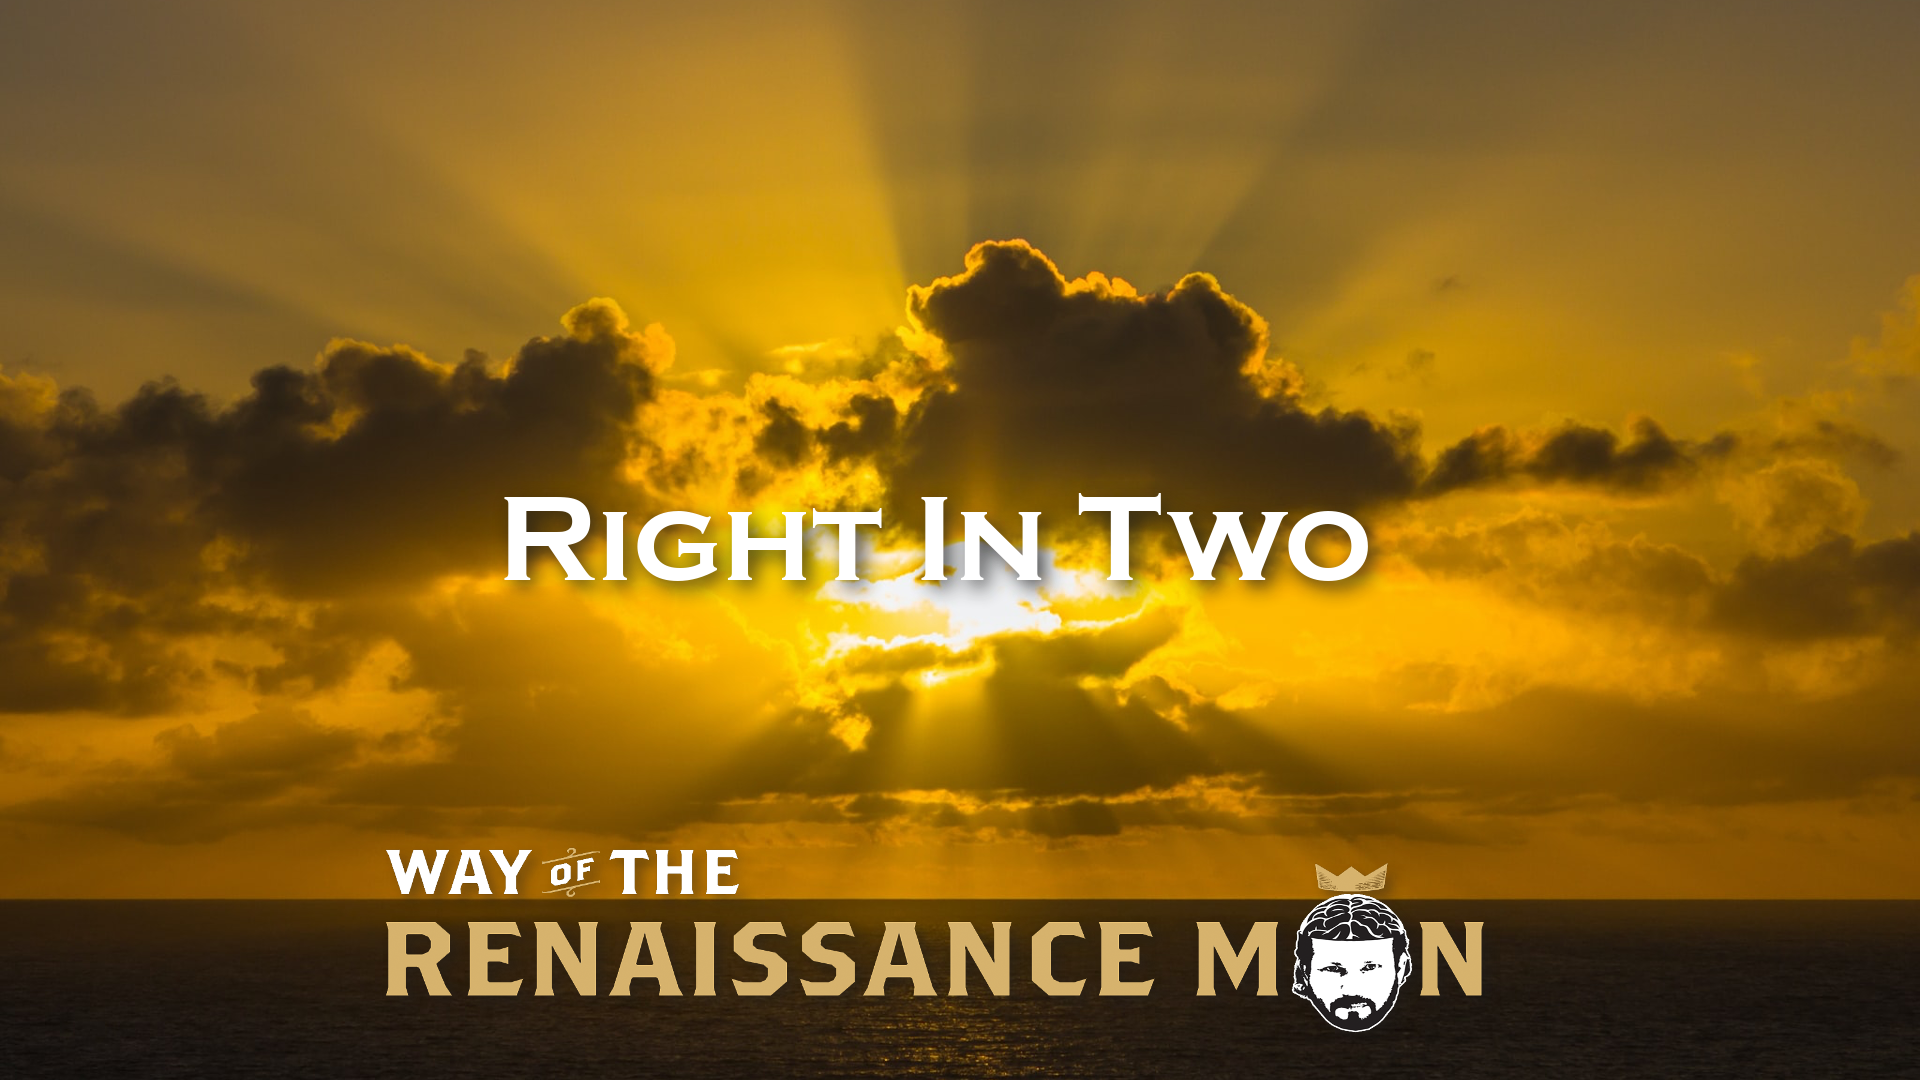 Artwork for Right in Two